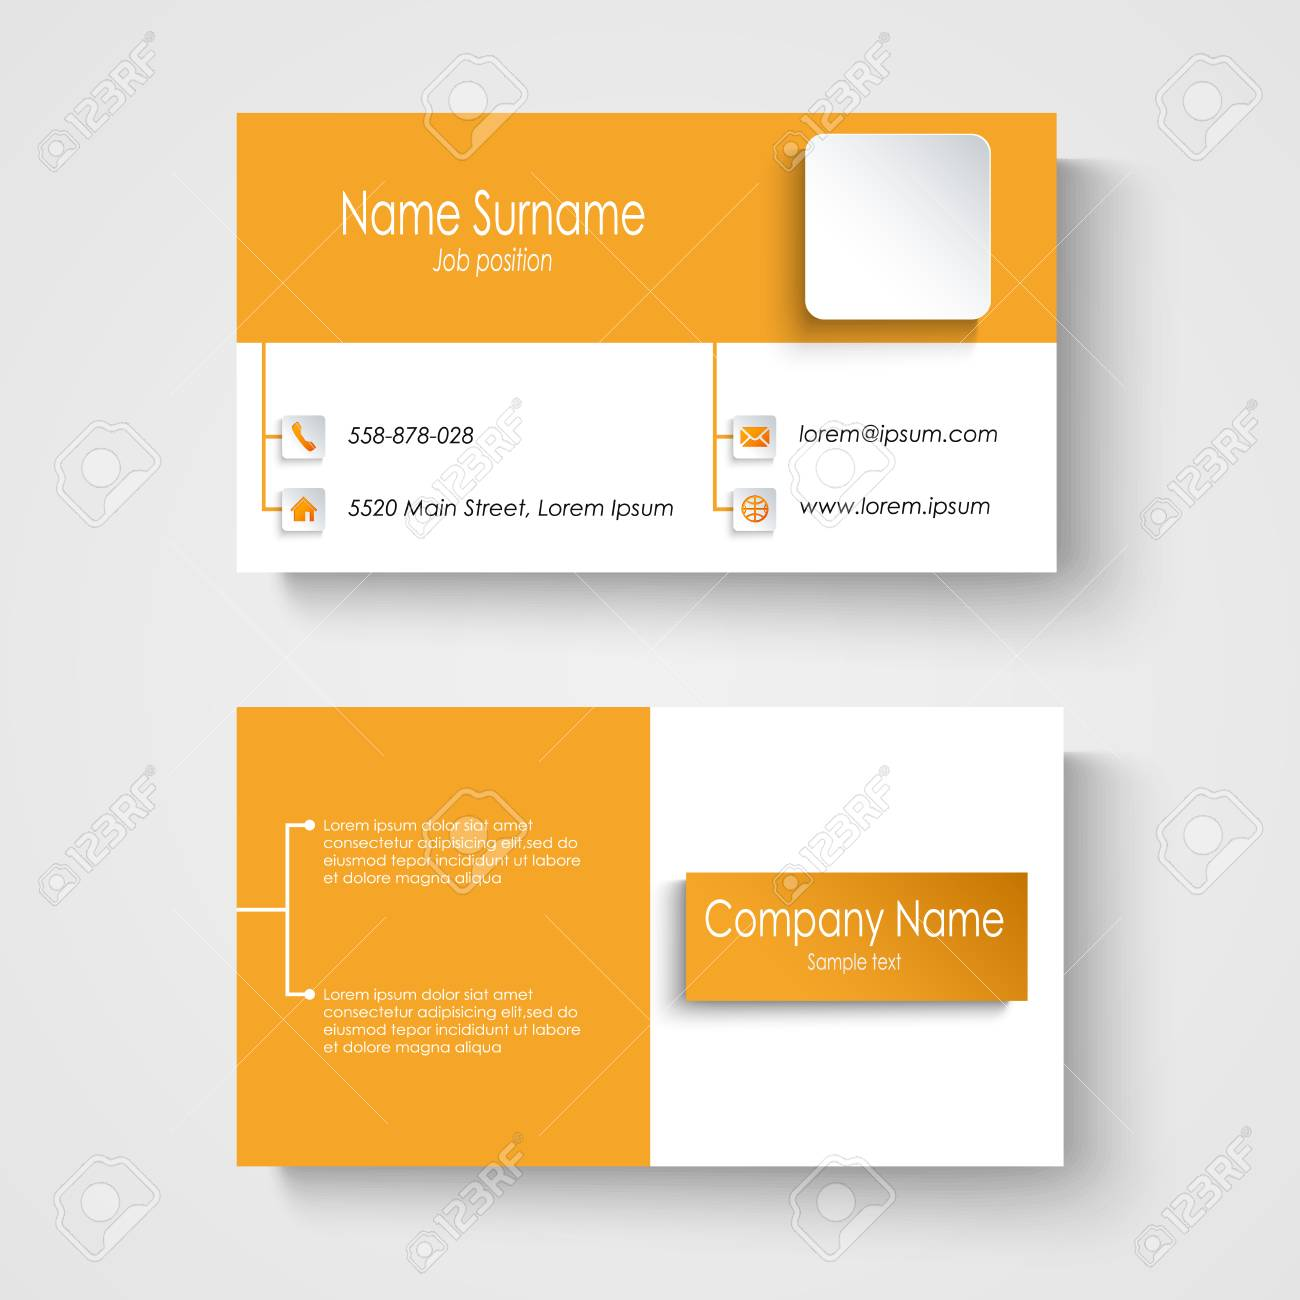 Modern sample orange business card template vector eps 10 royalty modern sample orange business card template vector eps 10 stock vector 29903948 flashek Gallery